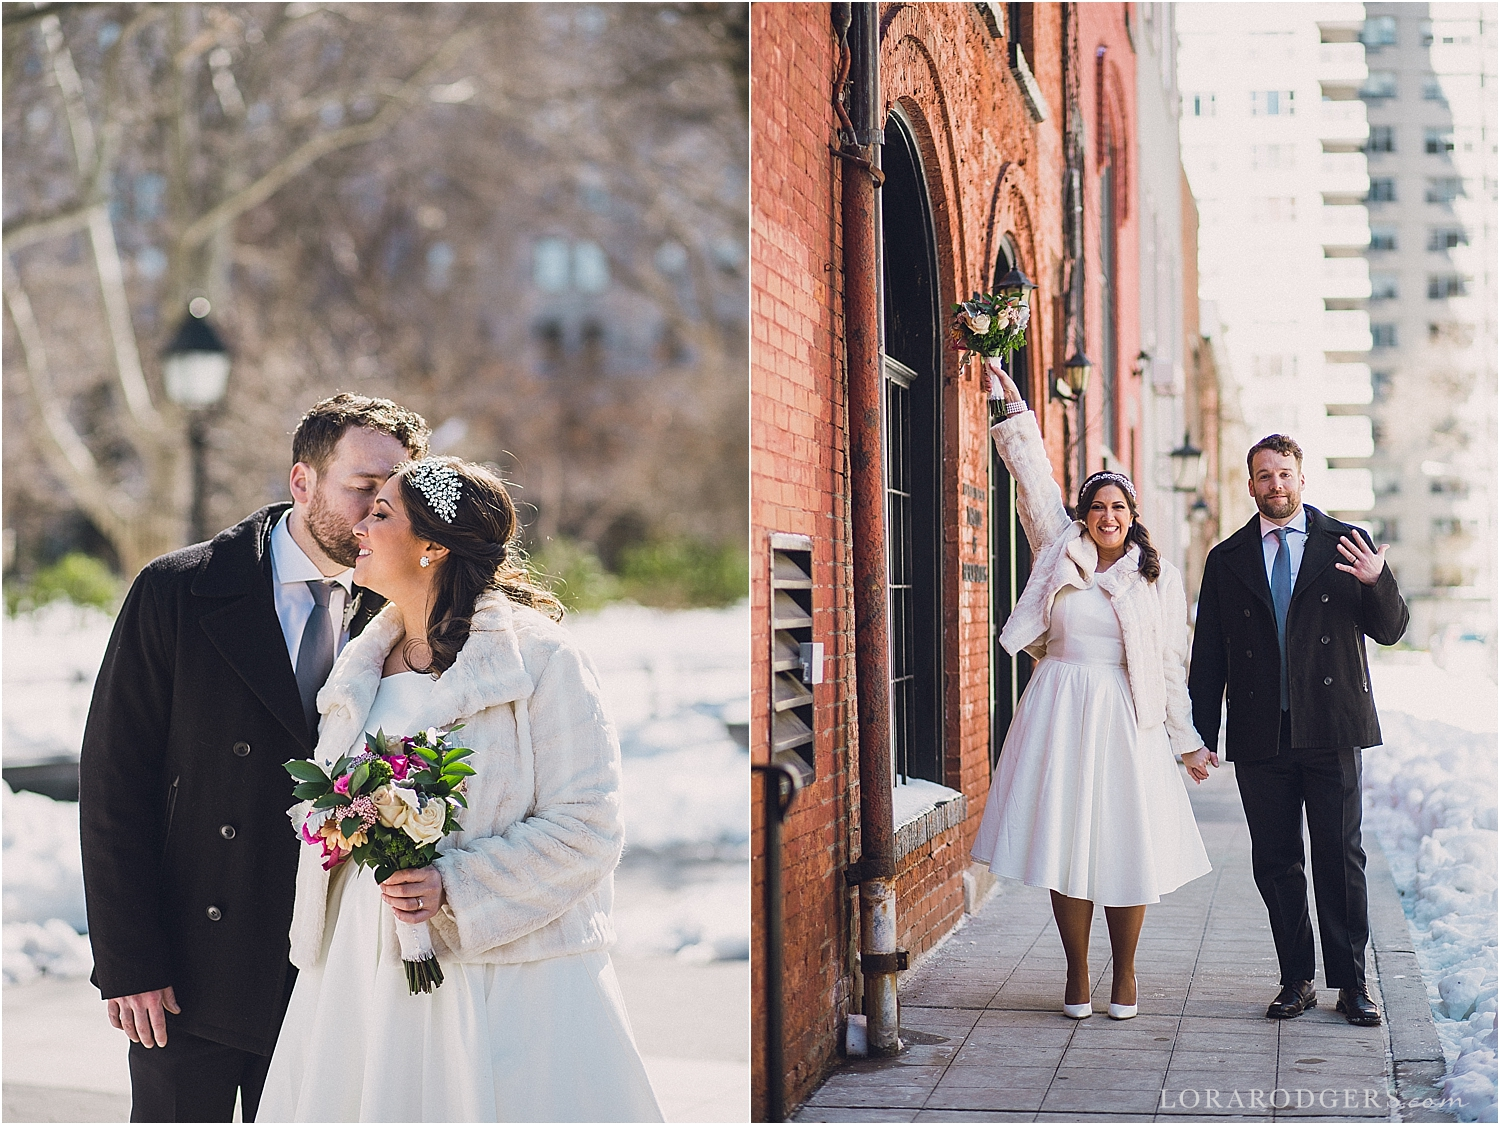 New York City Elopement Wedding Day